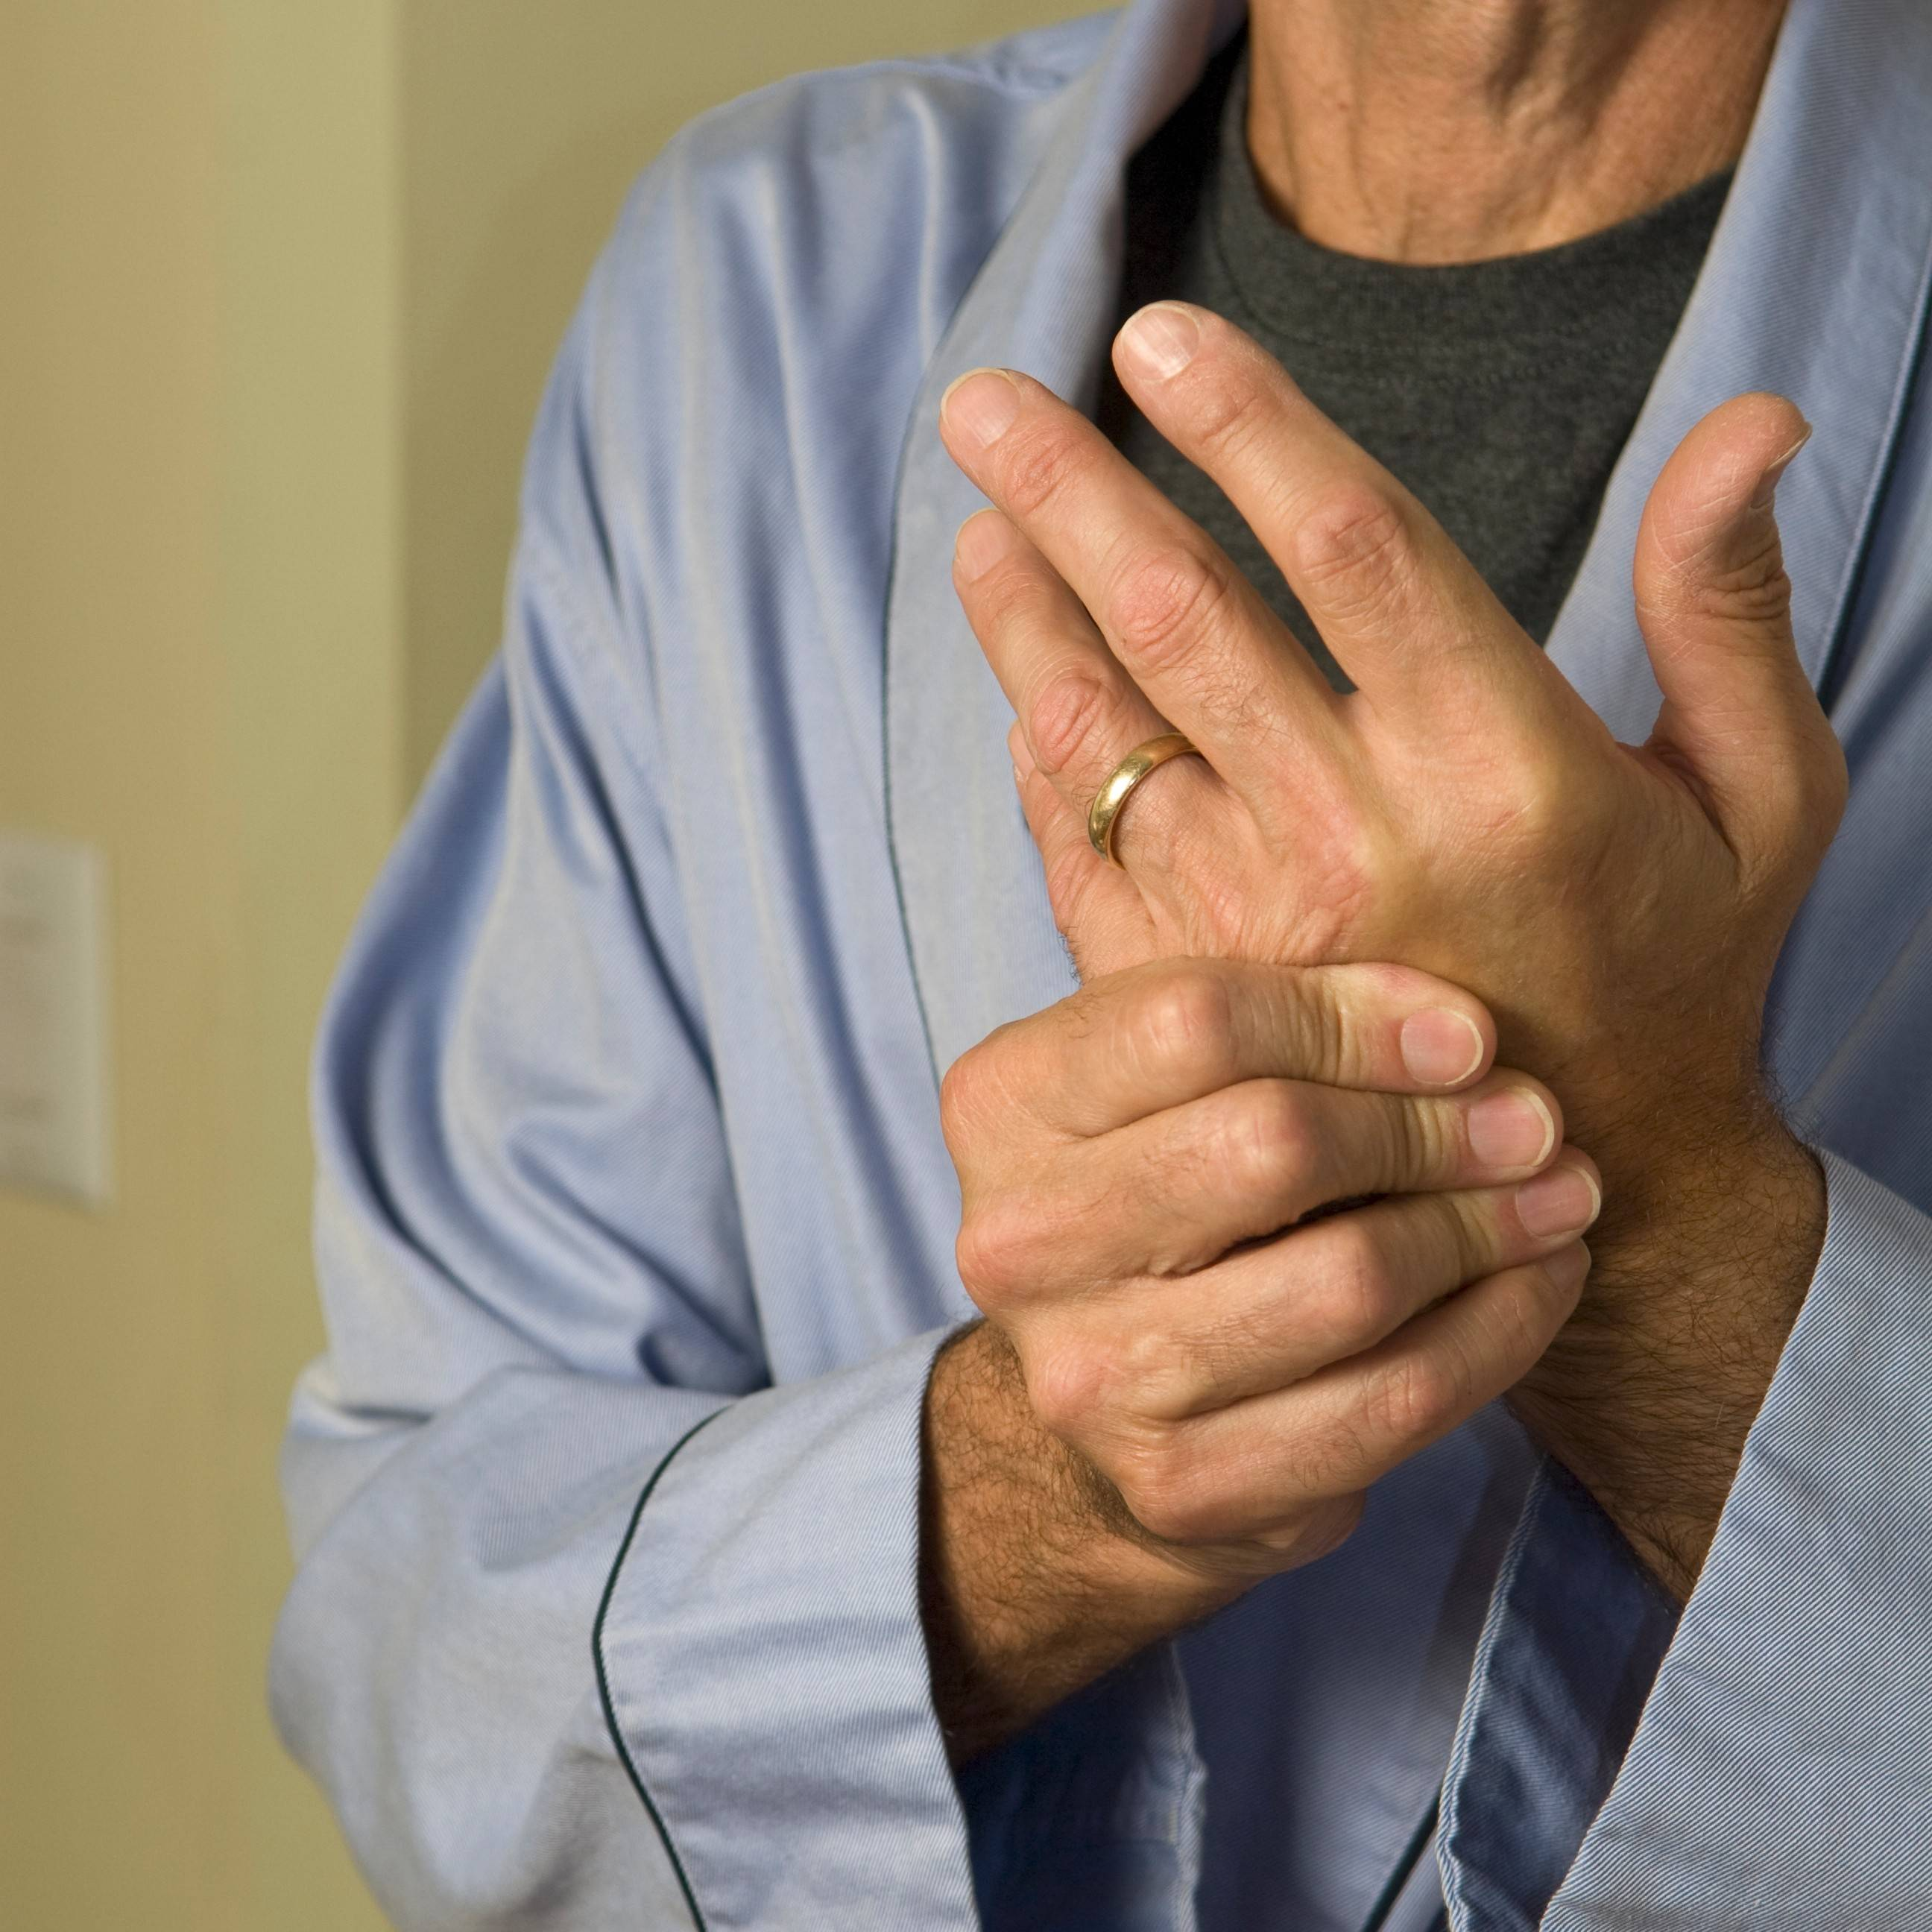 Rheumatoid arthritis is an autoimmune illness resulting in inflammation and destruction of the joints, most commonly the hands and wrists.